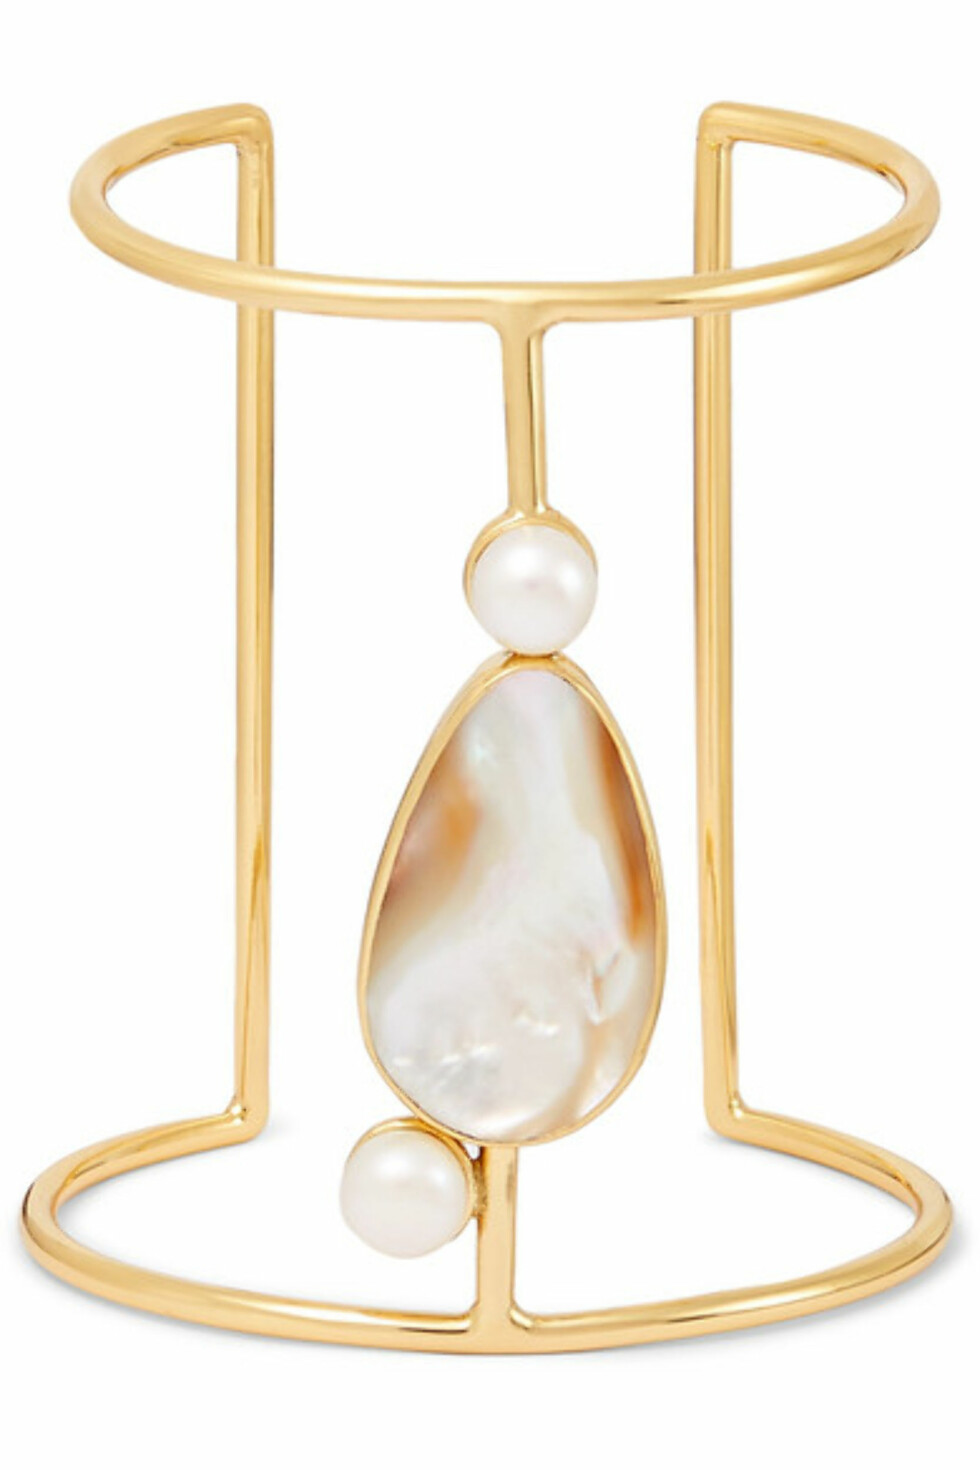 Armbånd fra Conerlia Webb |2500,-| https://www.net-a-porter.com/no/en/product/1051365/Cornelia_Webb/gold-plated-pearl-and-mother-of-pearl-cuff